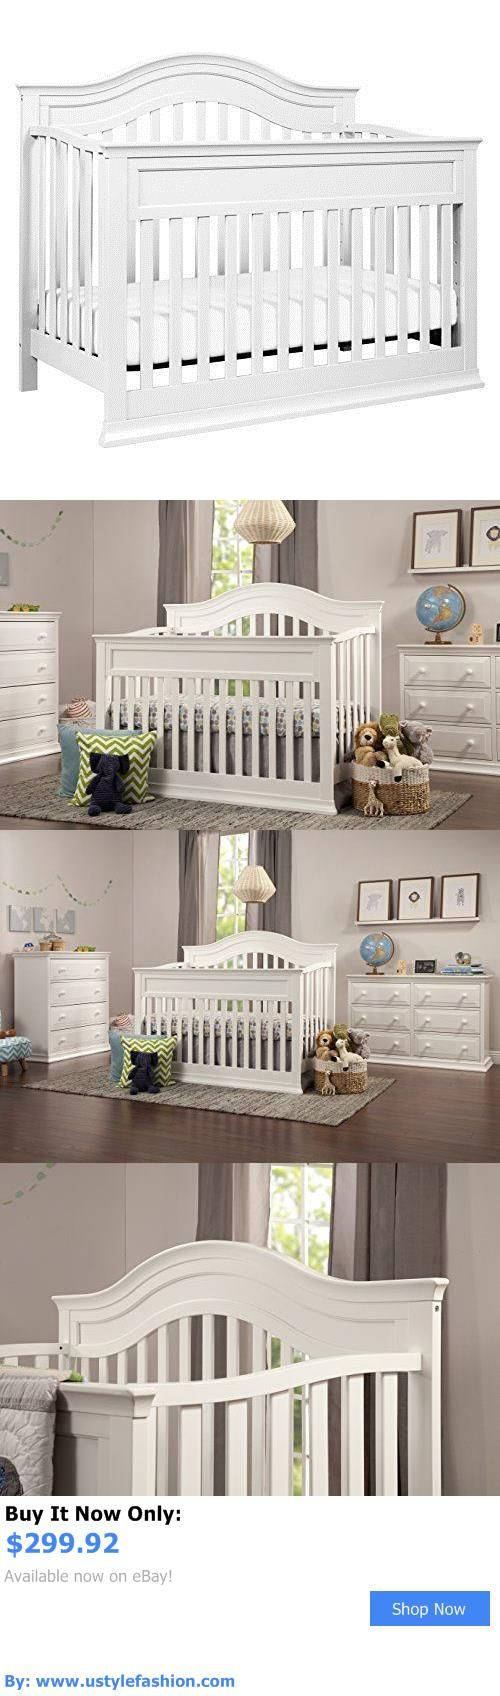 Victorian baby crib for sale - Cribs Davinci Brook 4 In 1 Convertible Crib Pine Wood Toddler Bed